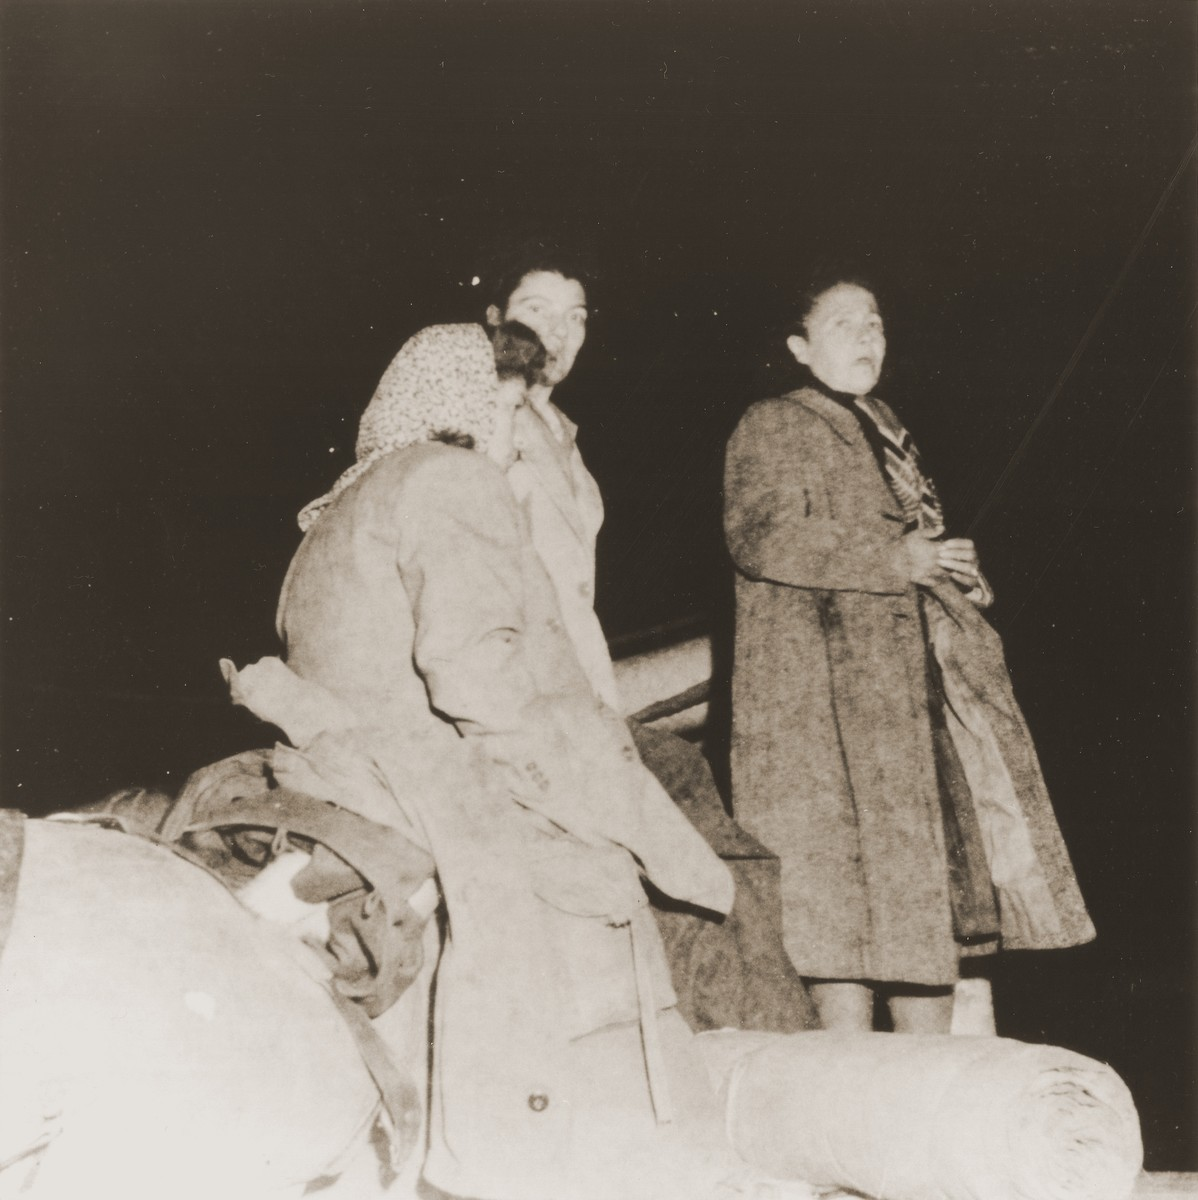 Female passengers, wearing several layers of clothing they cannot pack, wait on the deck of the Mala immigrant ship.